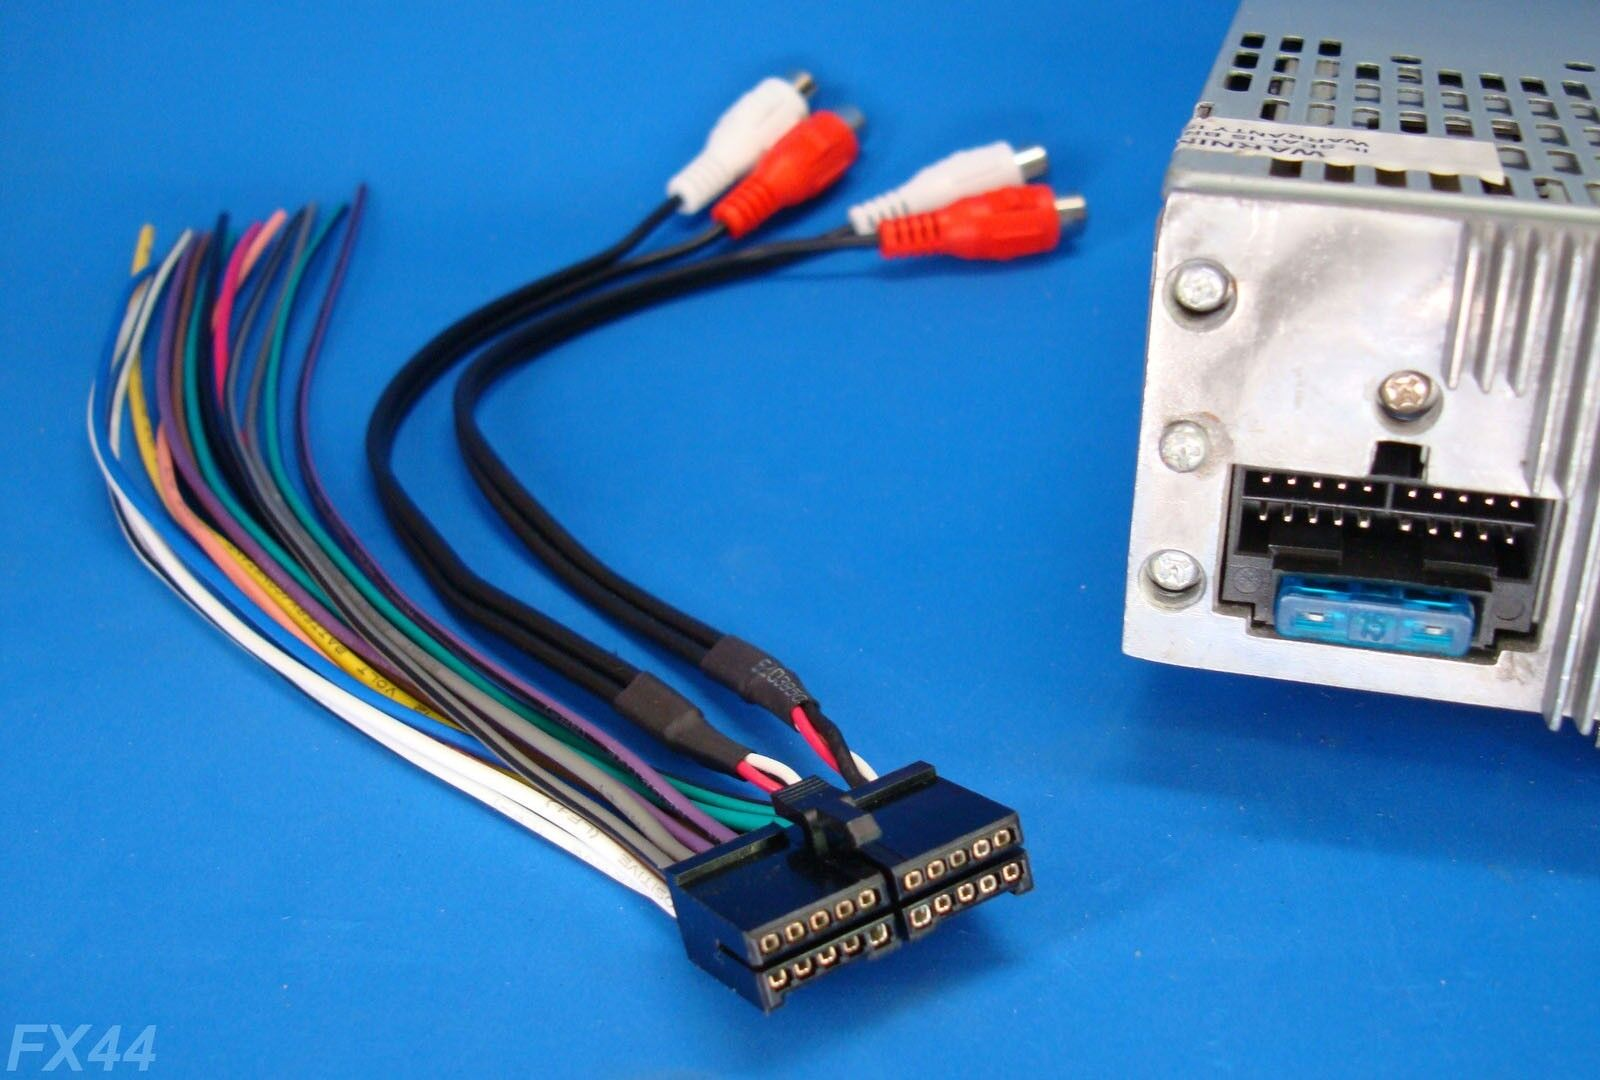 s l1600 xo vision 20 pin radio wire harness stereo power plug back clip xo vision wiring harness at n-0.co